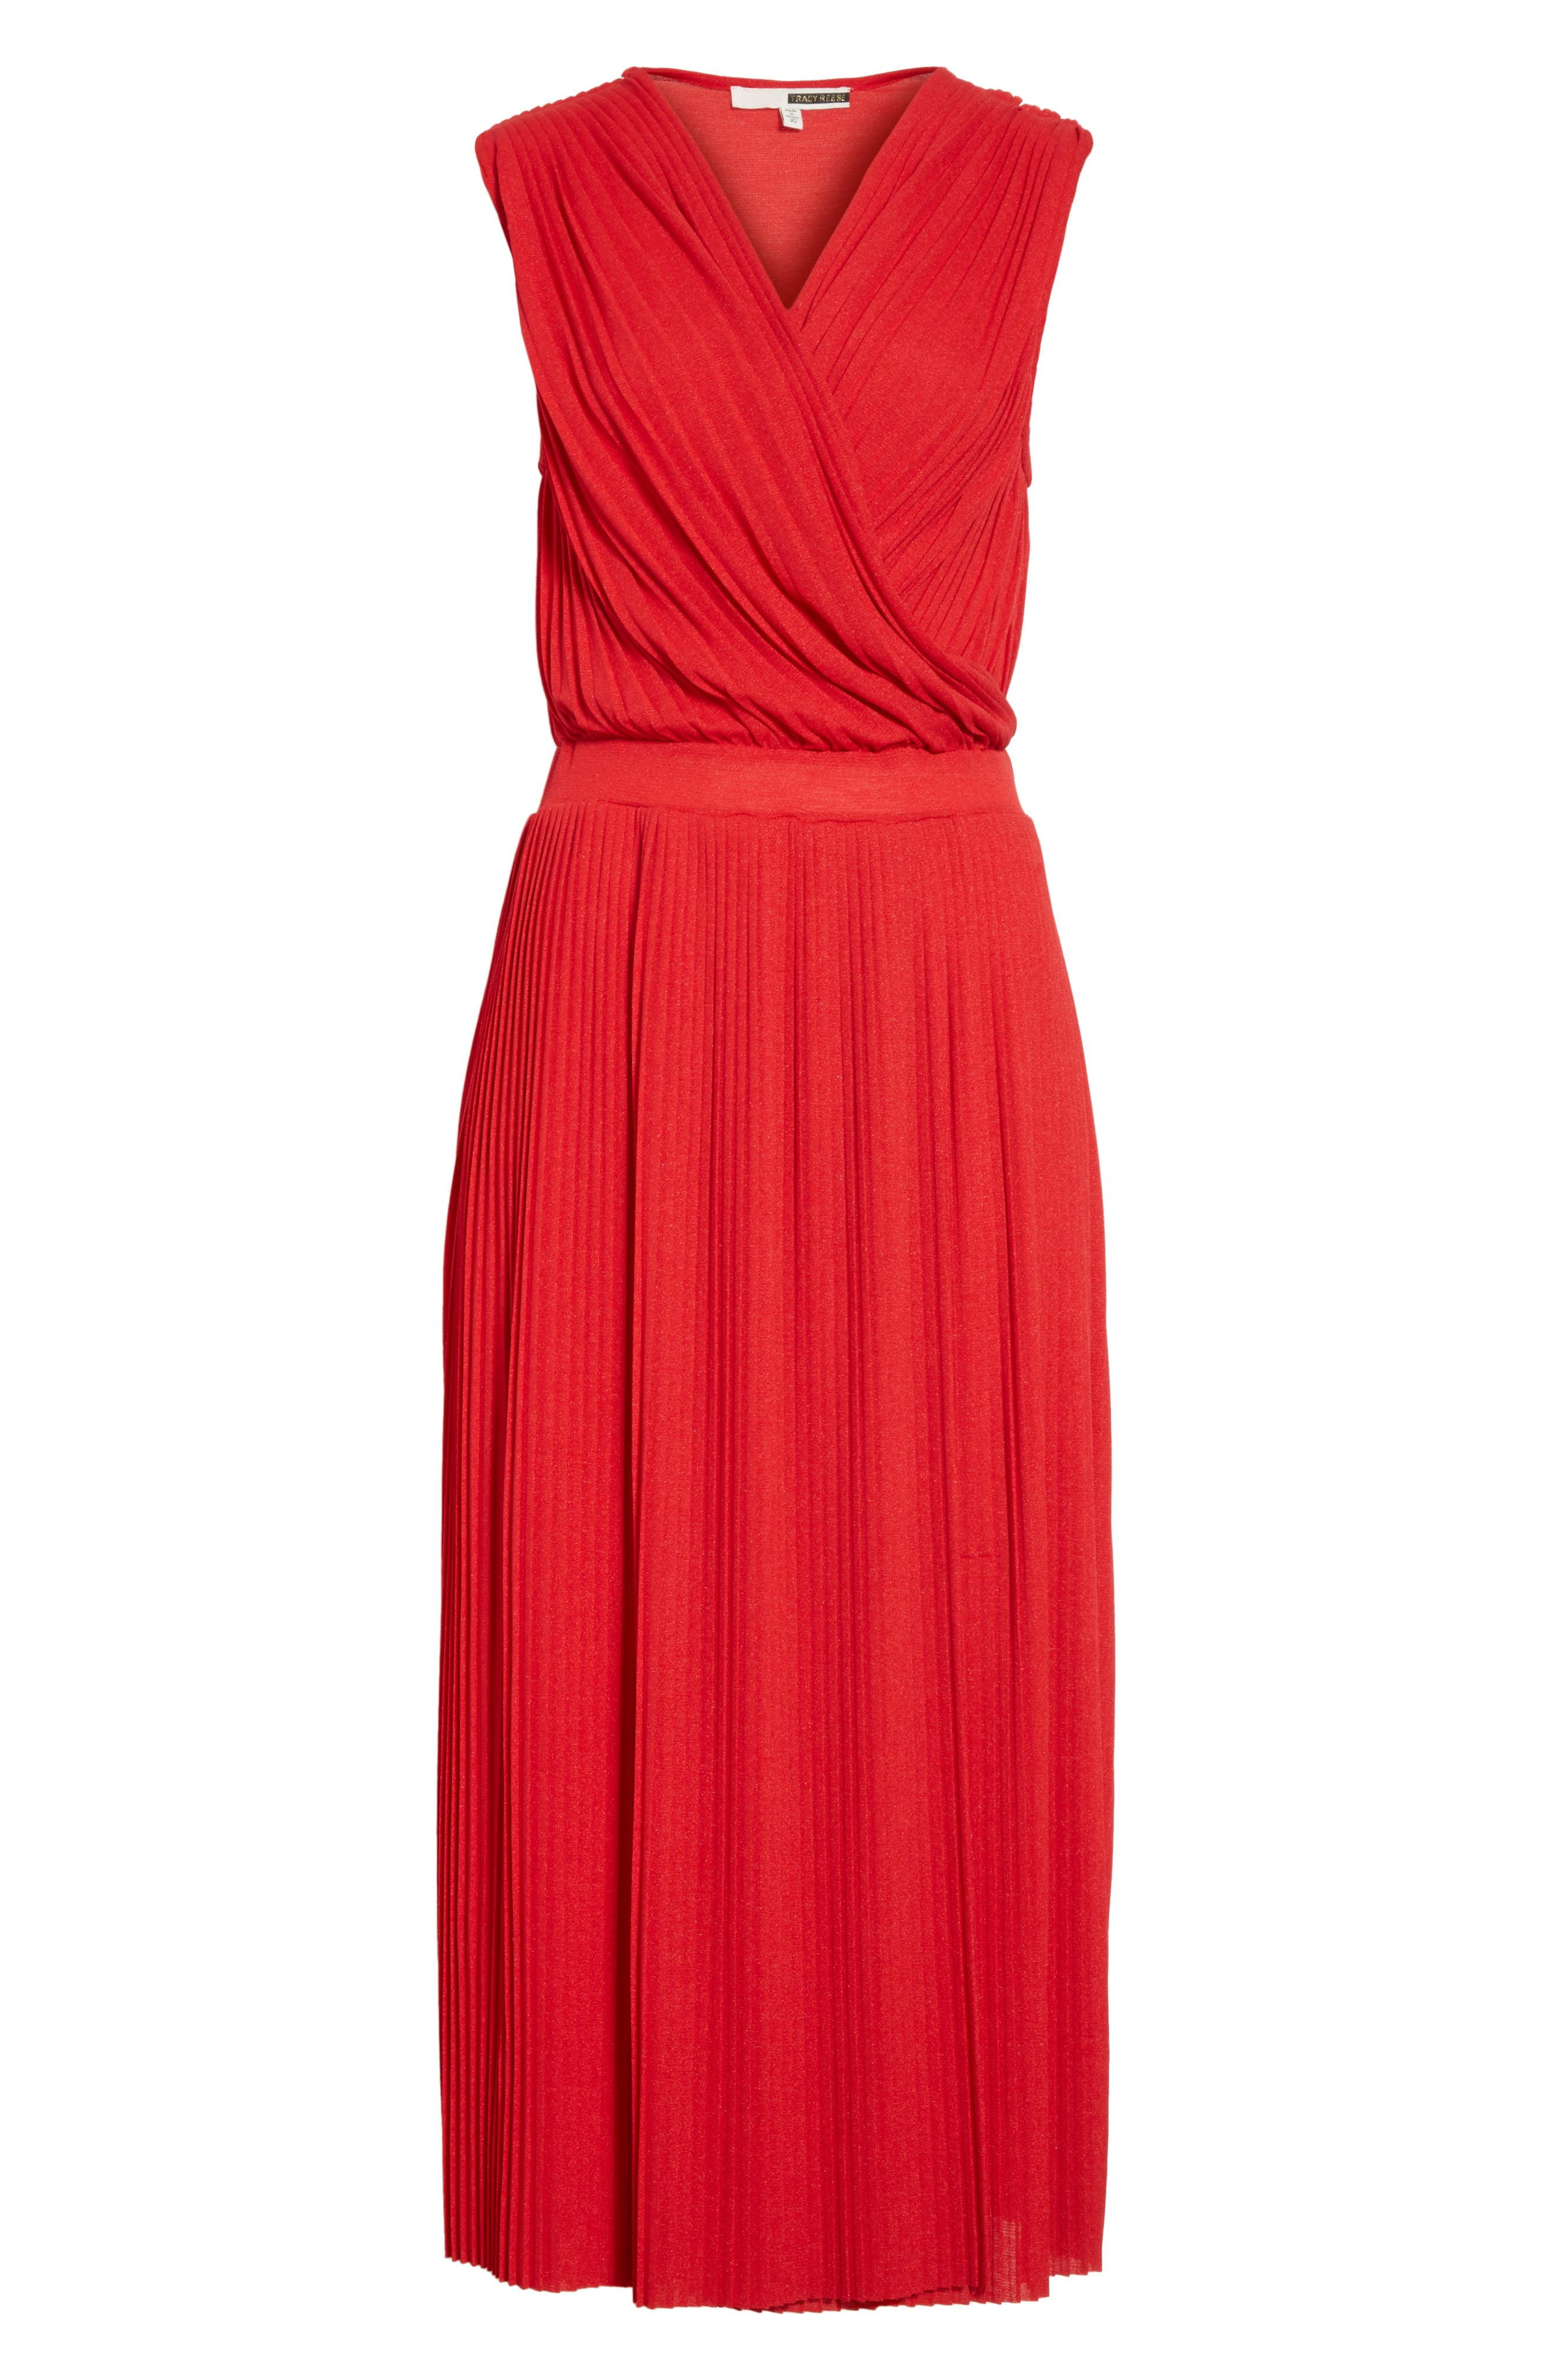 Surplice Fit & Flare Dress,                             Alternate thumbnail 6, color,                             Red Lacquer